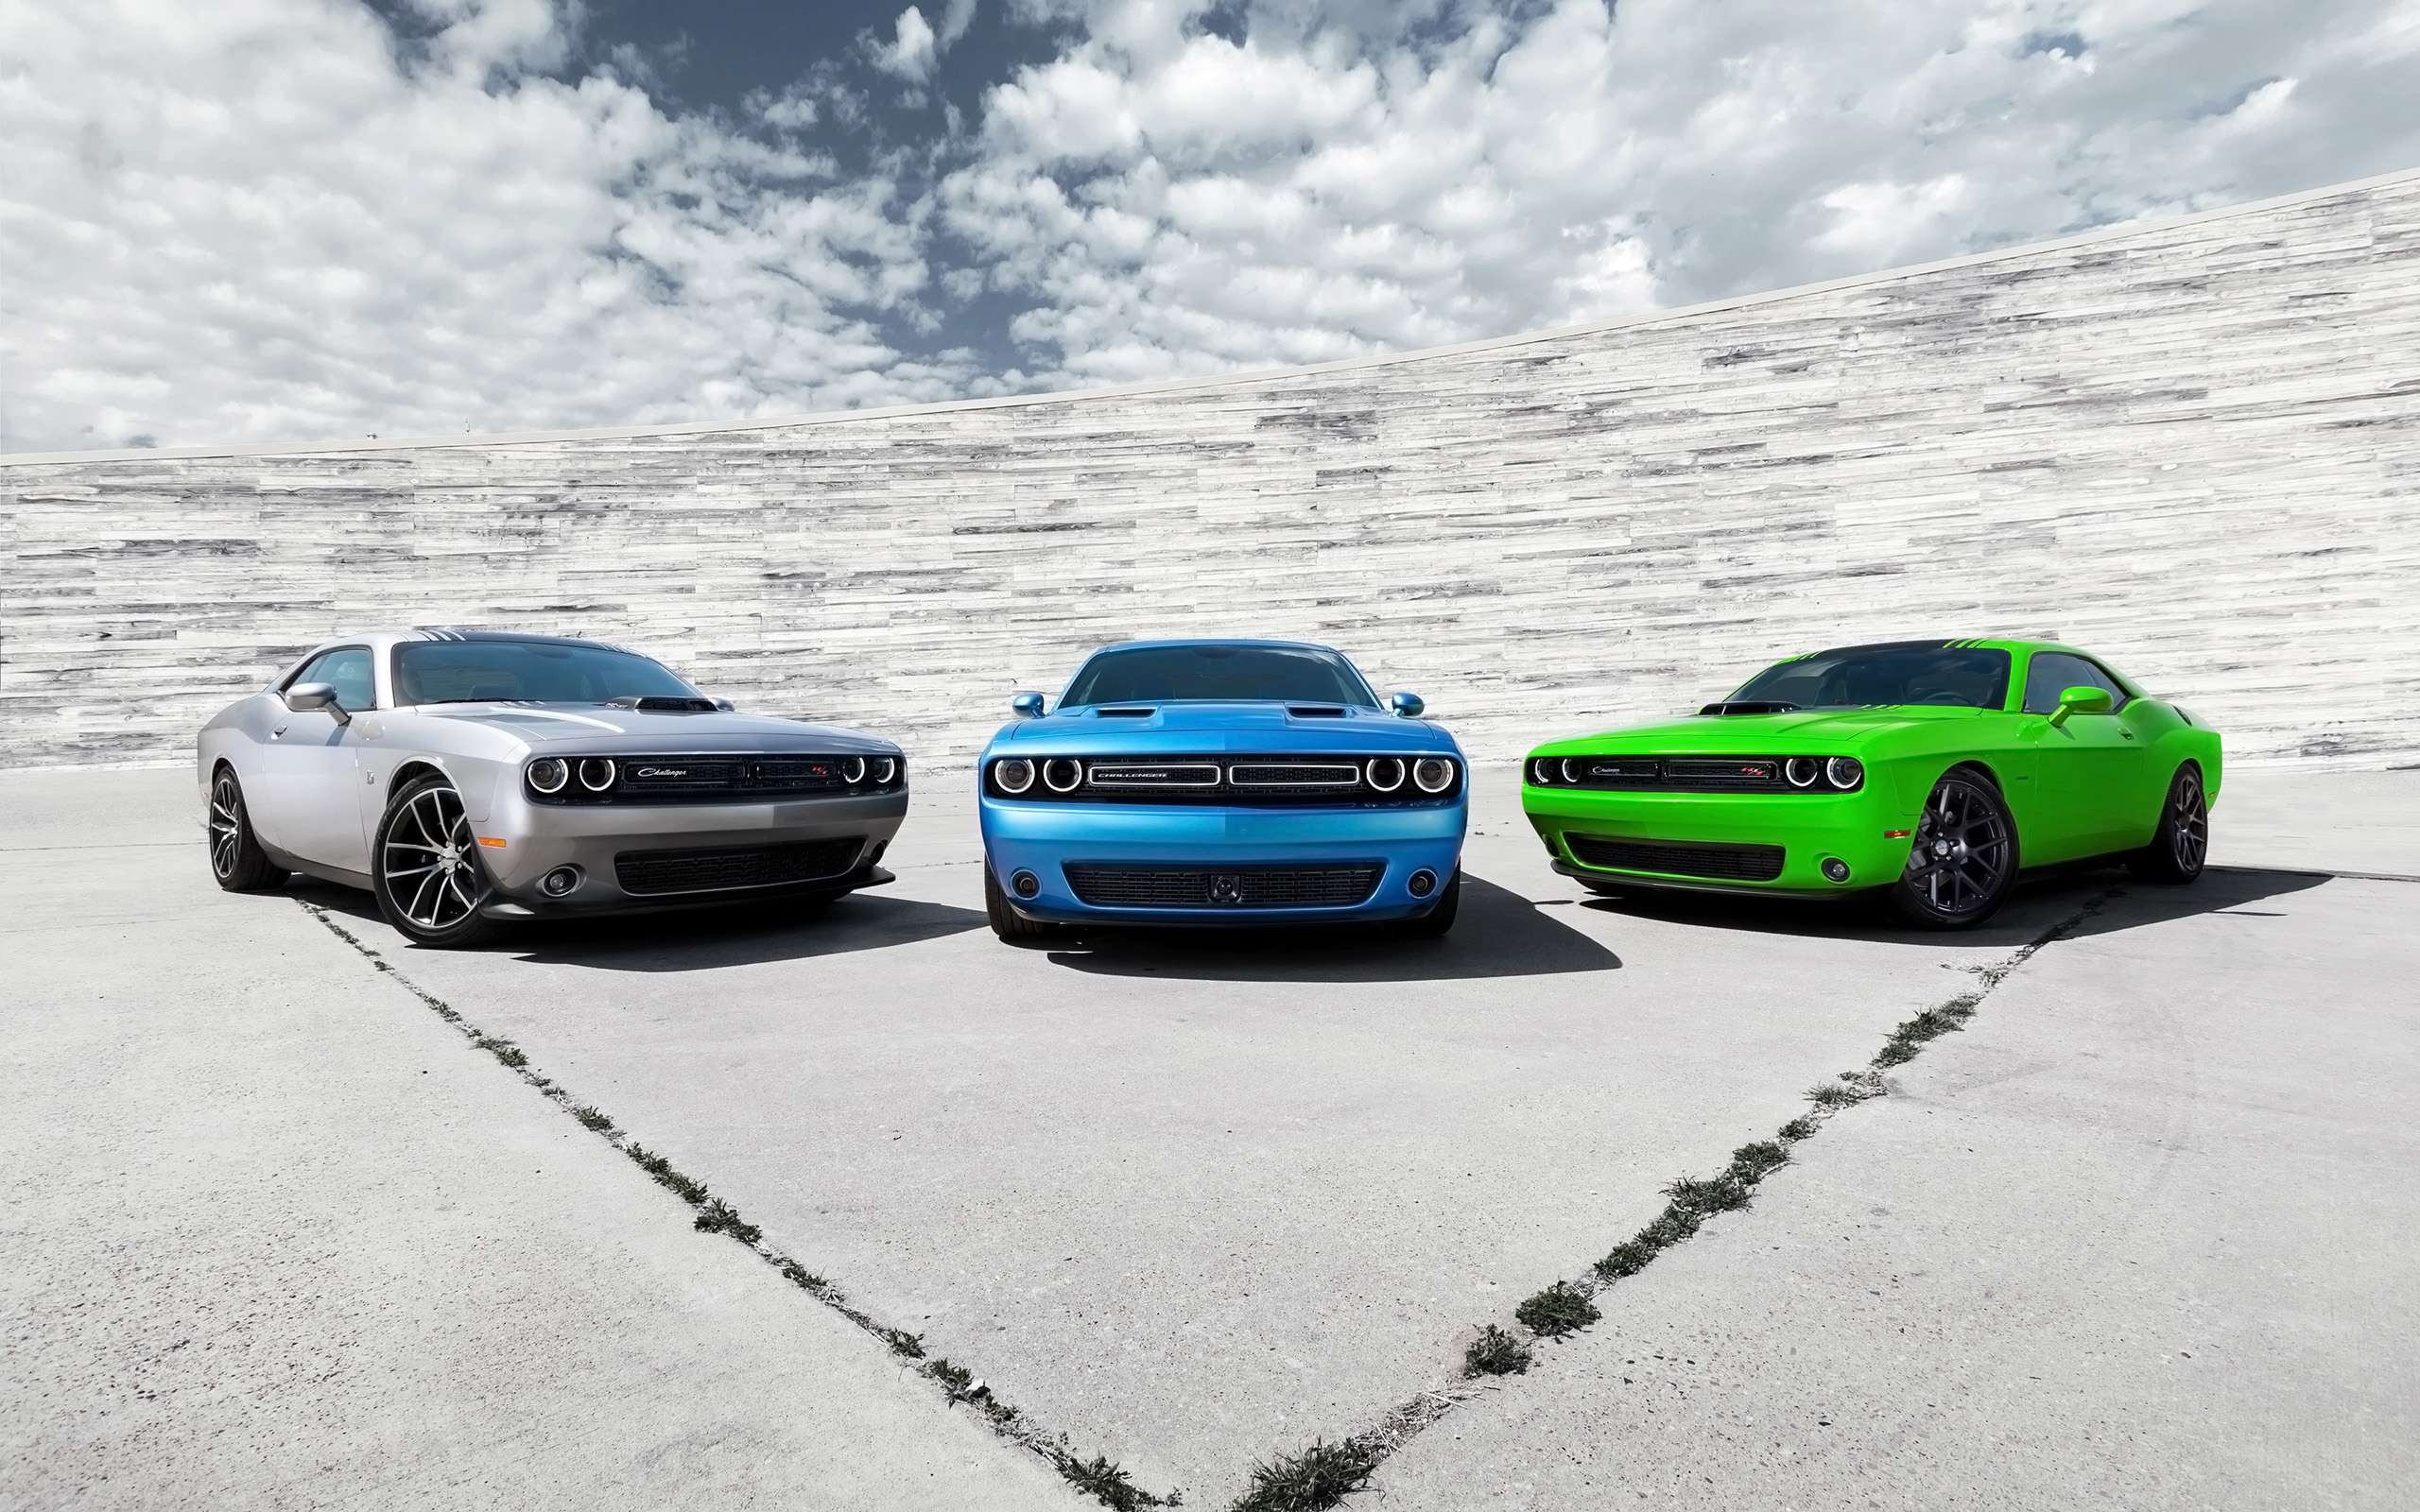 2015 Dodge Challenger Cars Hd Wallpaper Hd Latest Wallpapers